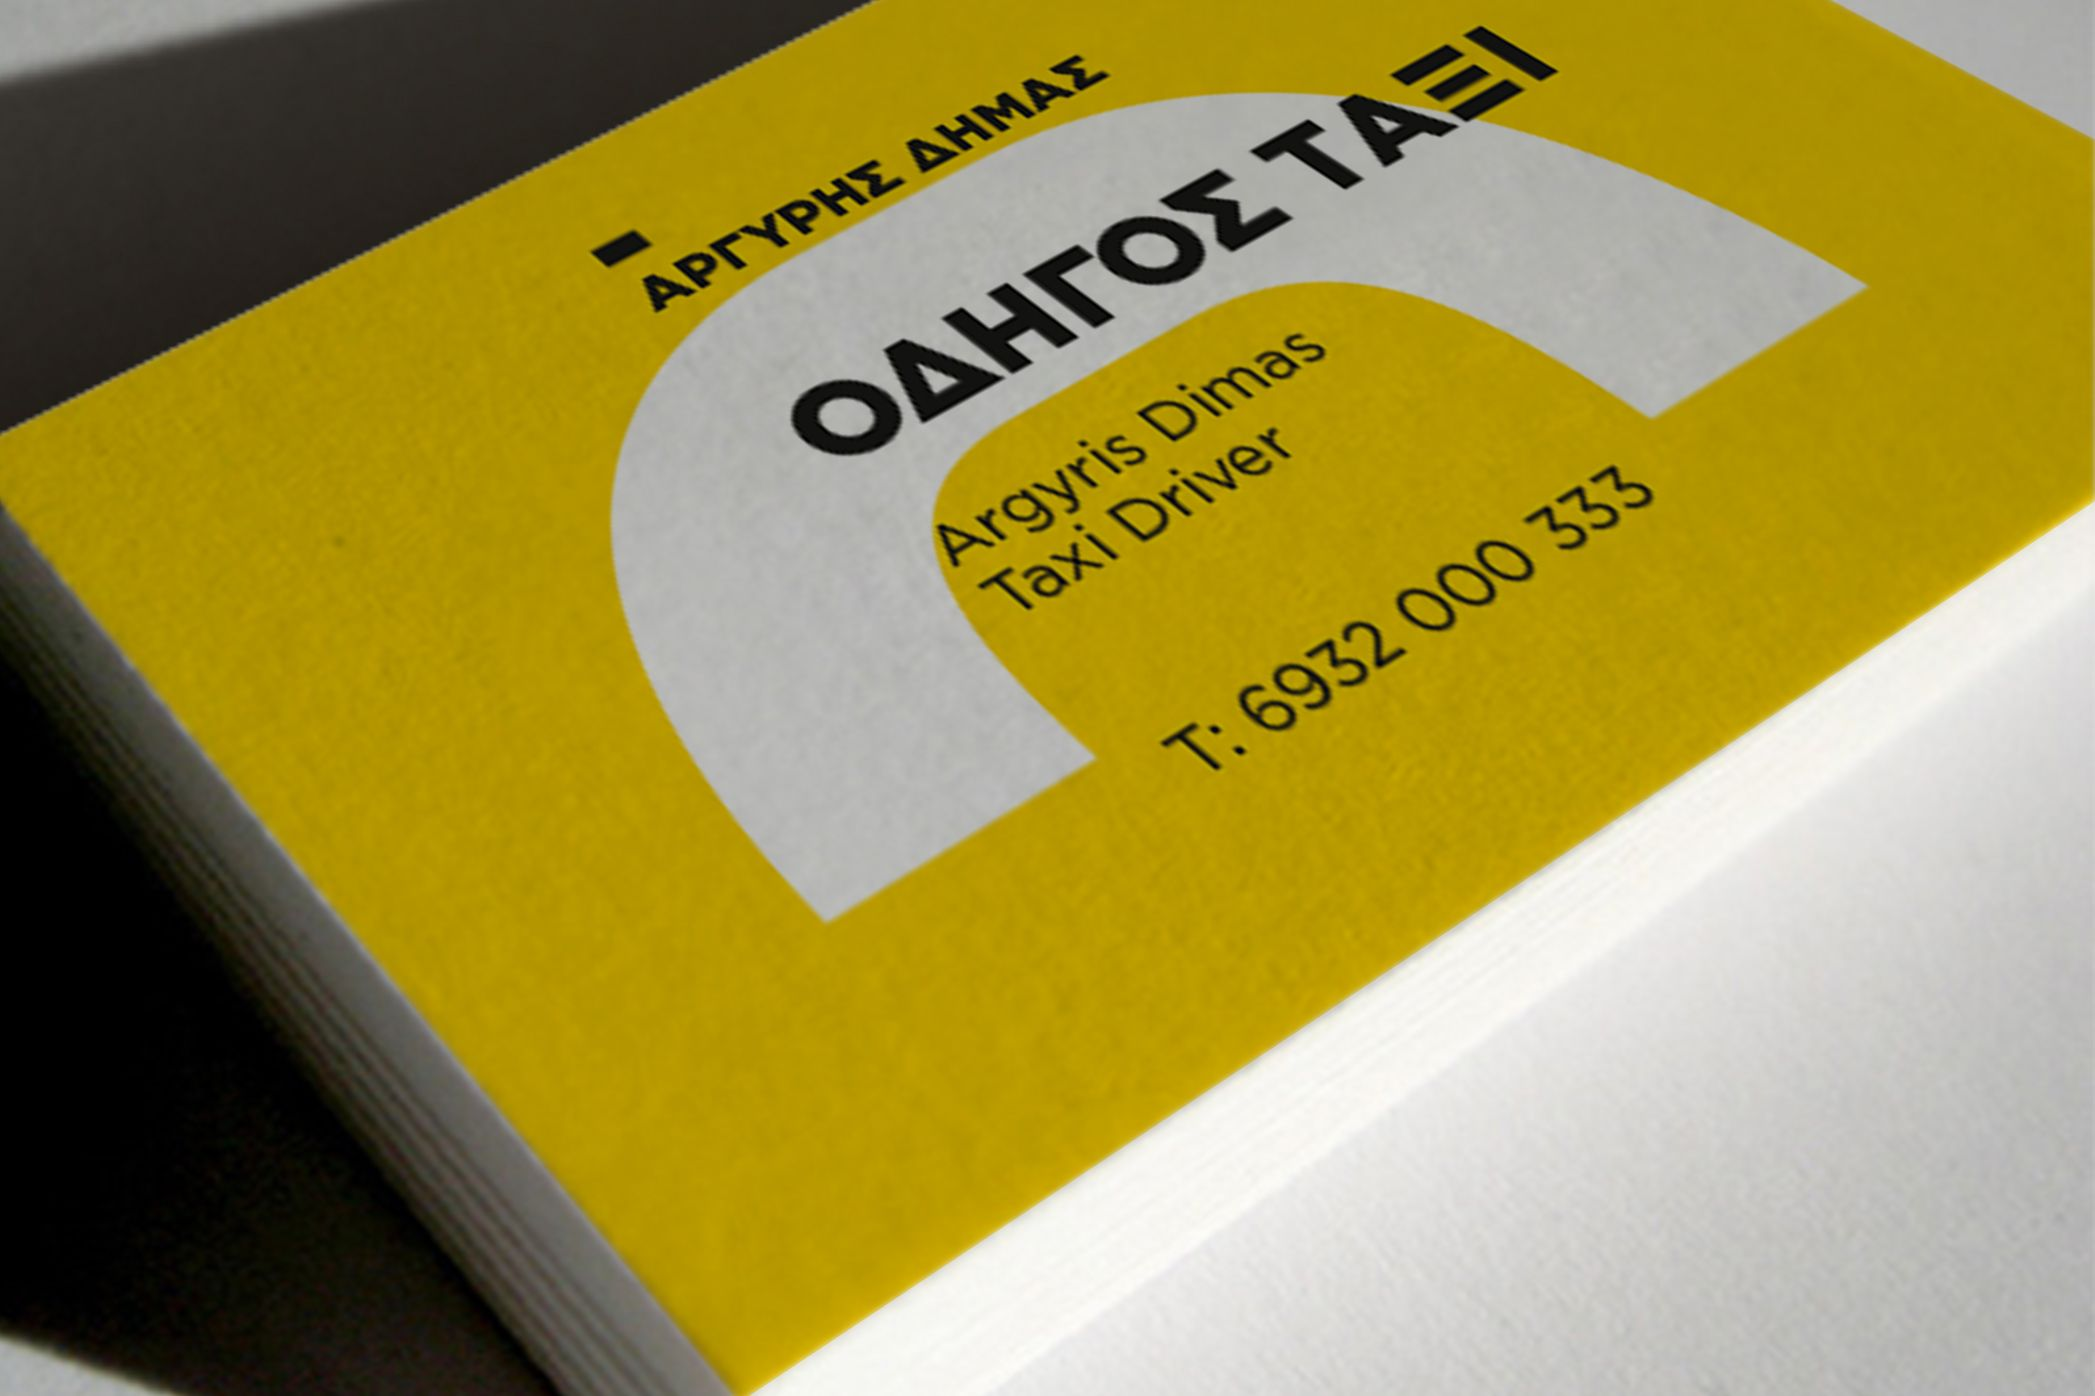 taxi driver business cards | brand identity | Pinterest | Taxi ...